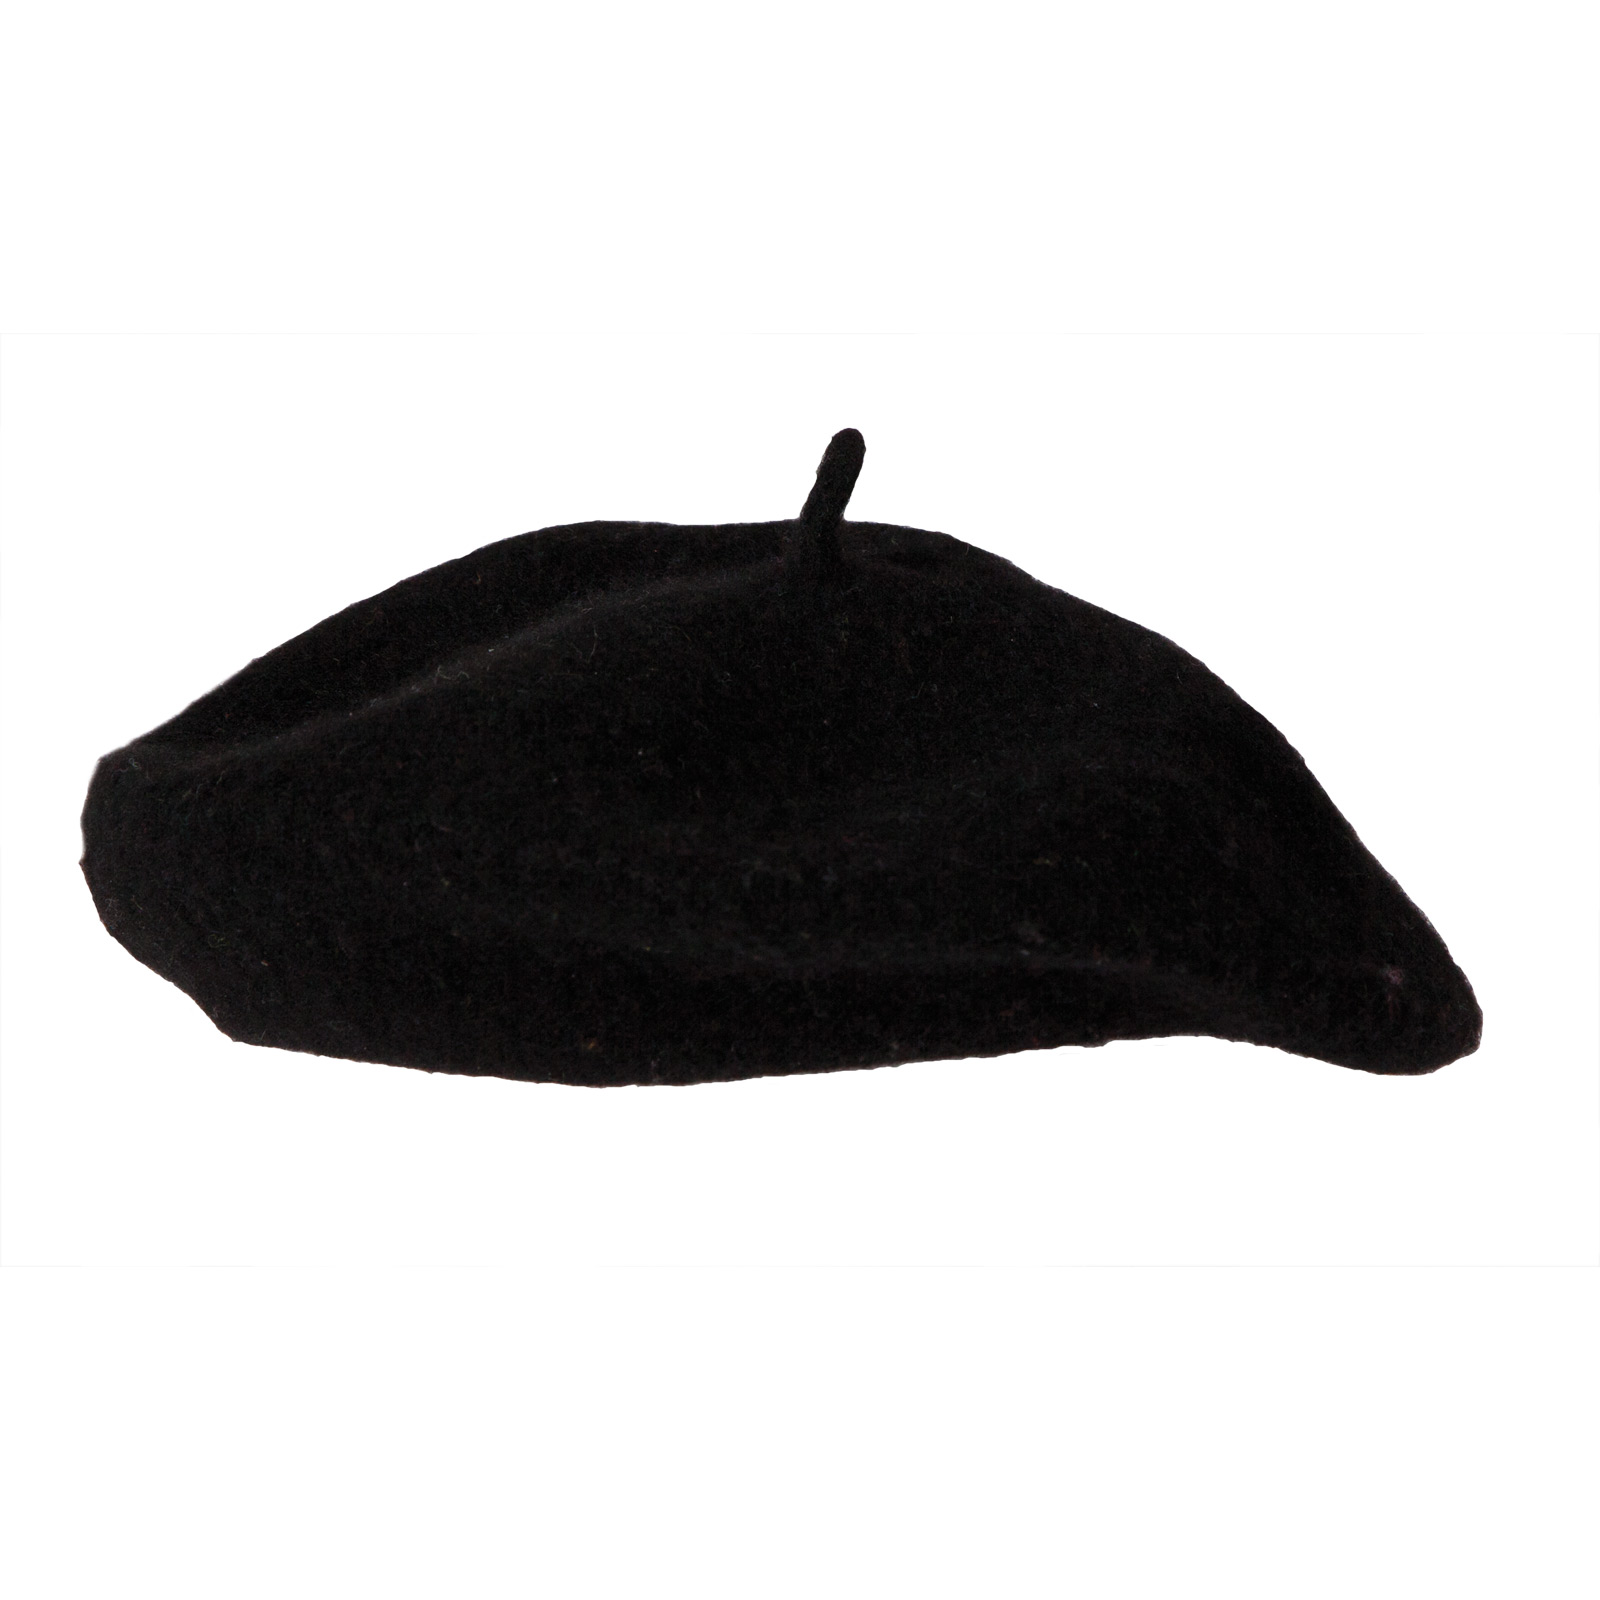 Mens Black French Beret Hat Cap Halloween National Fancy Dress Accessory New